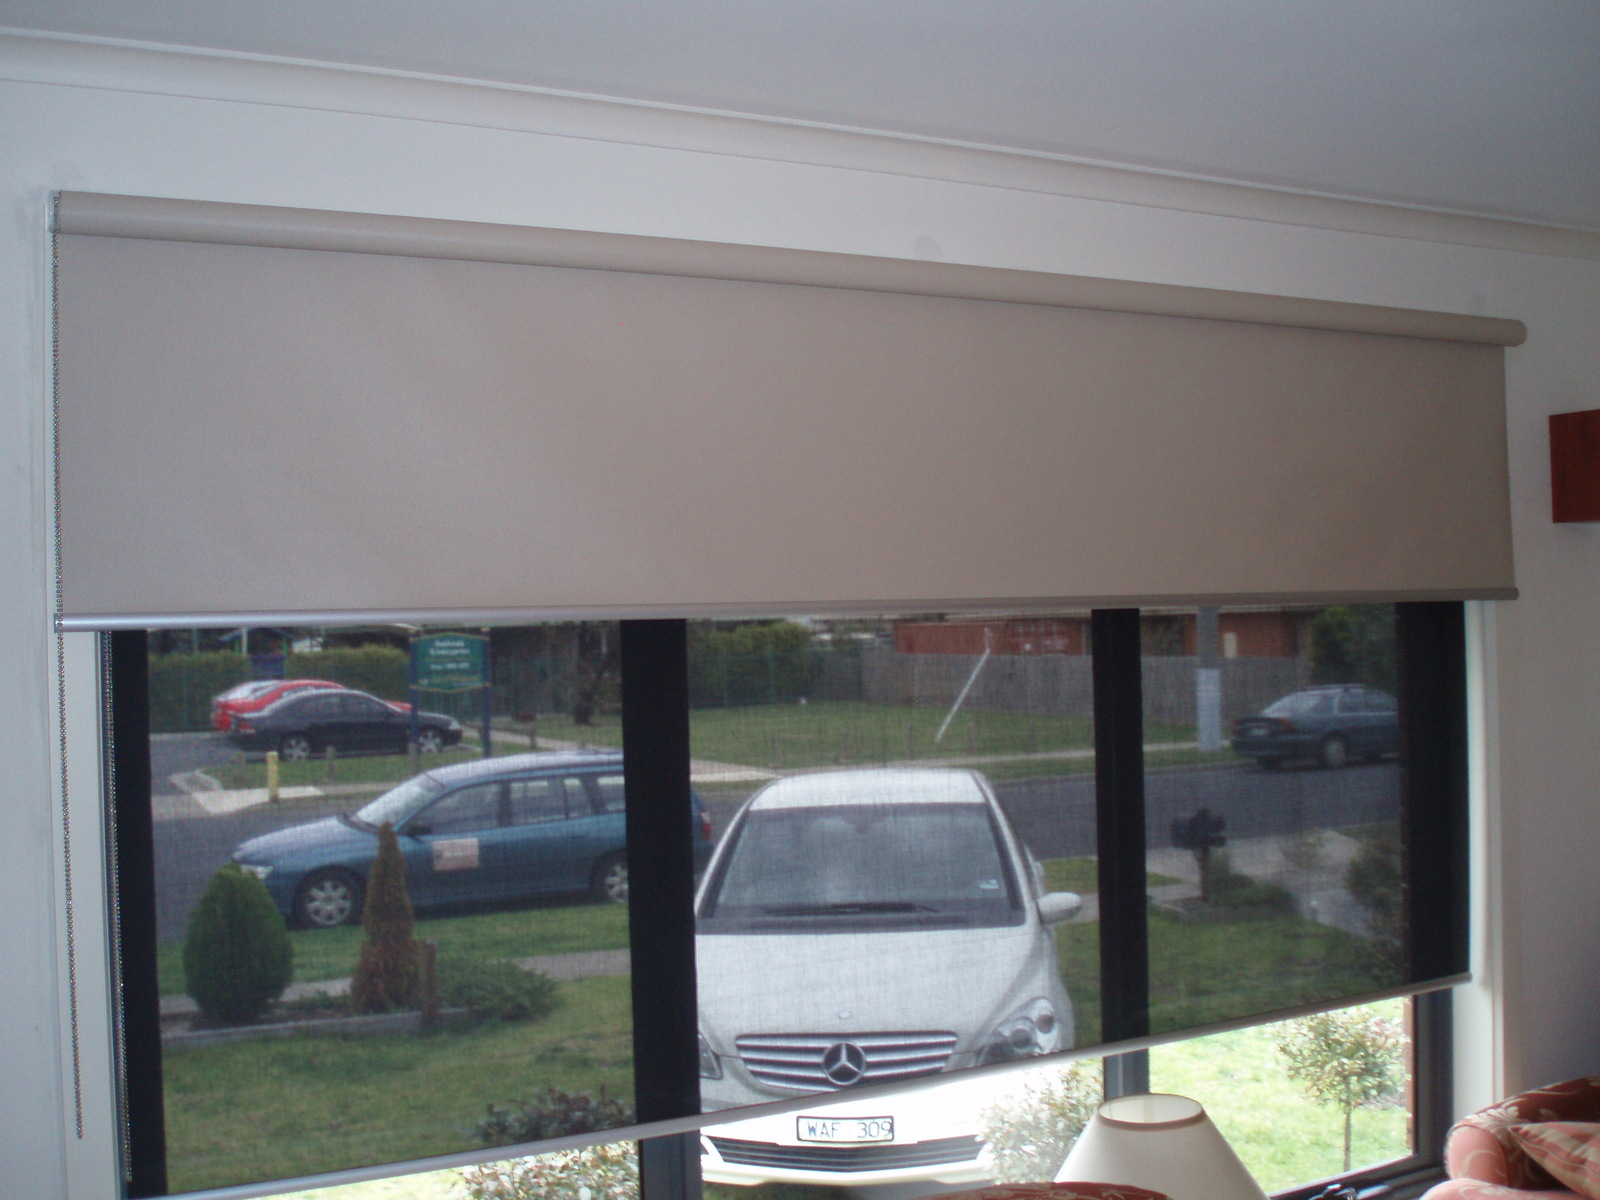 Blinds online australia do it yourself diy blinds online into roller blind screenday blind see through solutioingenieria Choice Image